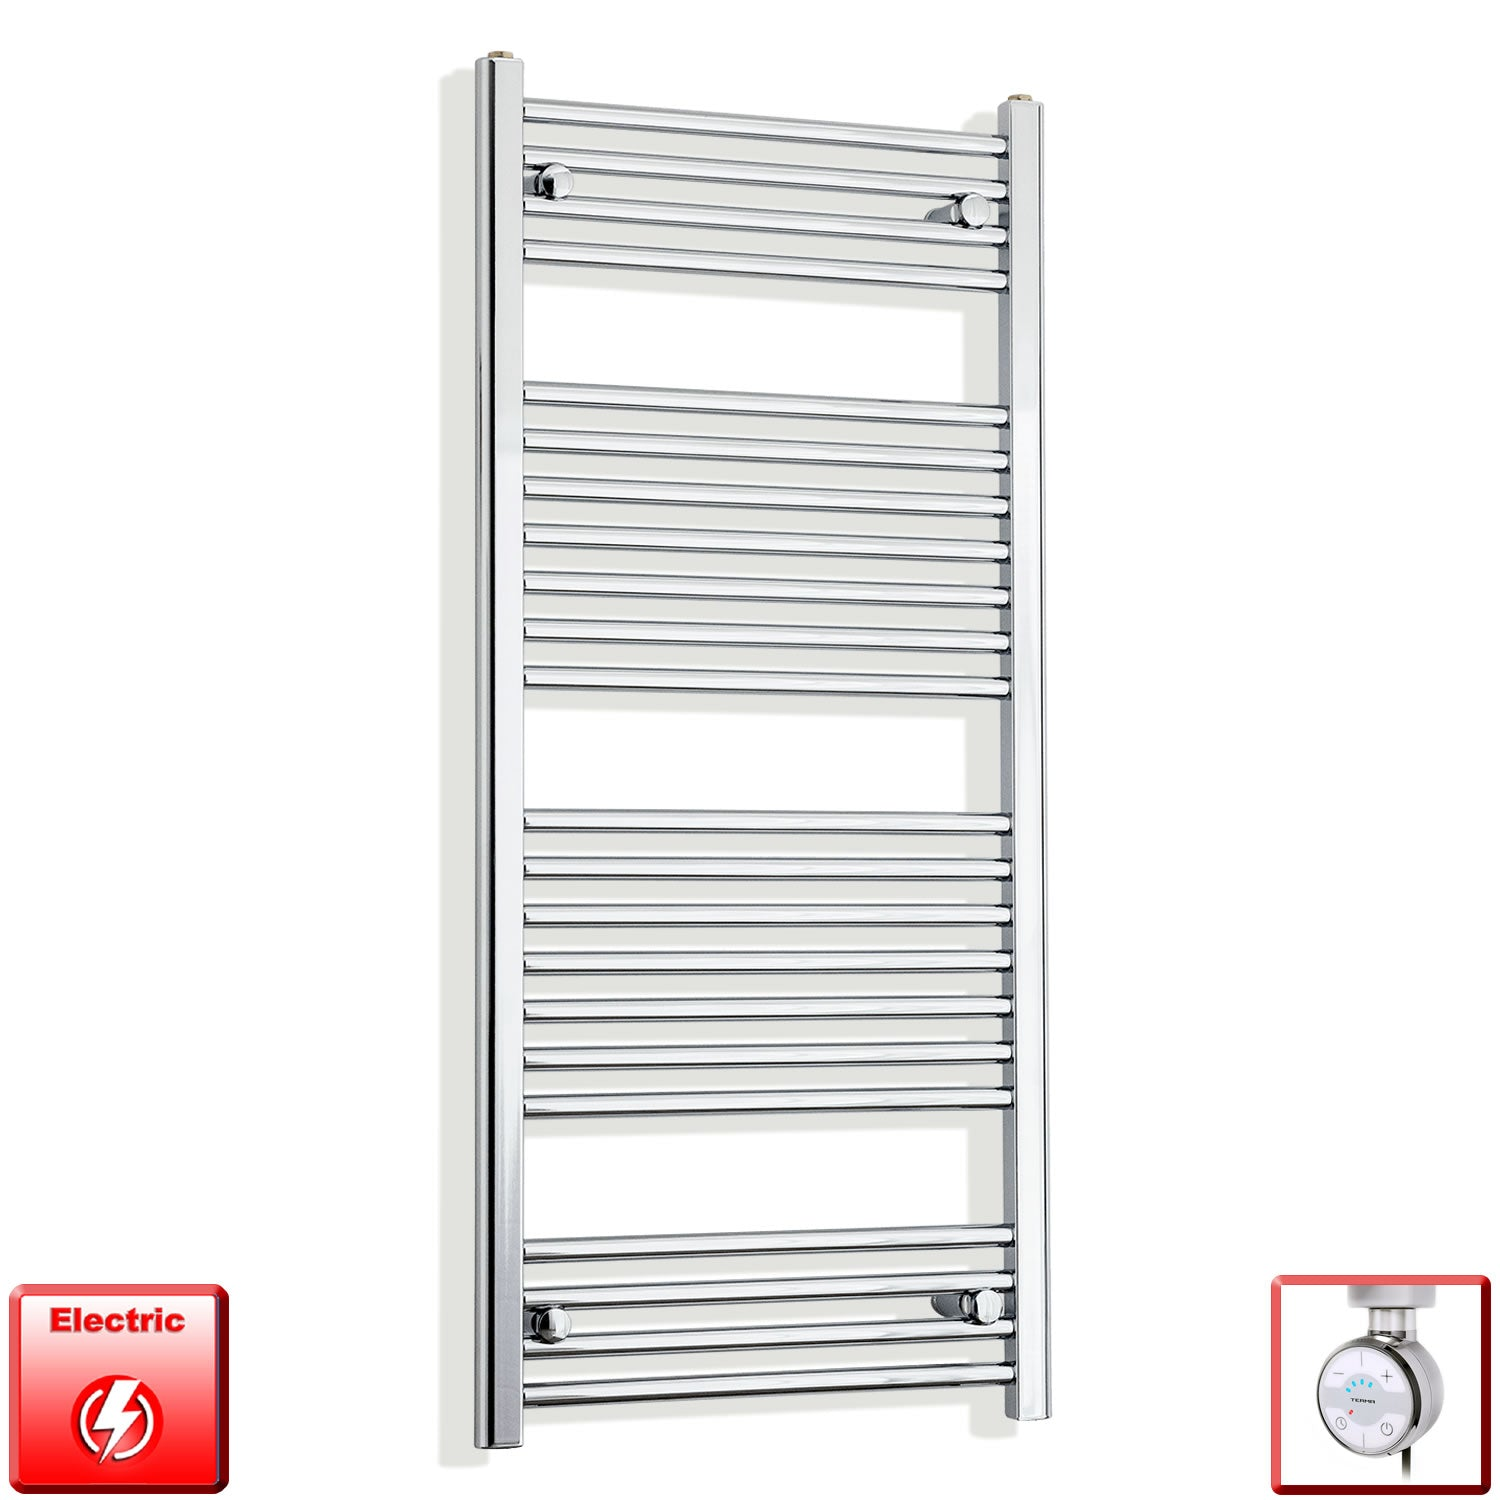 500mm Wide 1200mm High Pre-Filled Chrome Electric Towel Rail Radiator With Thermostatic MOA Element